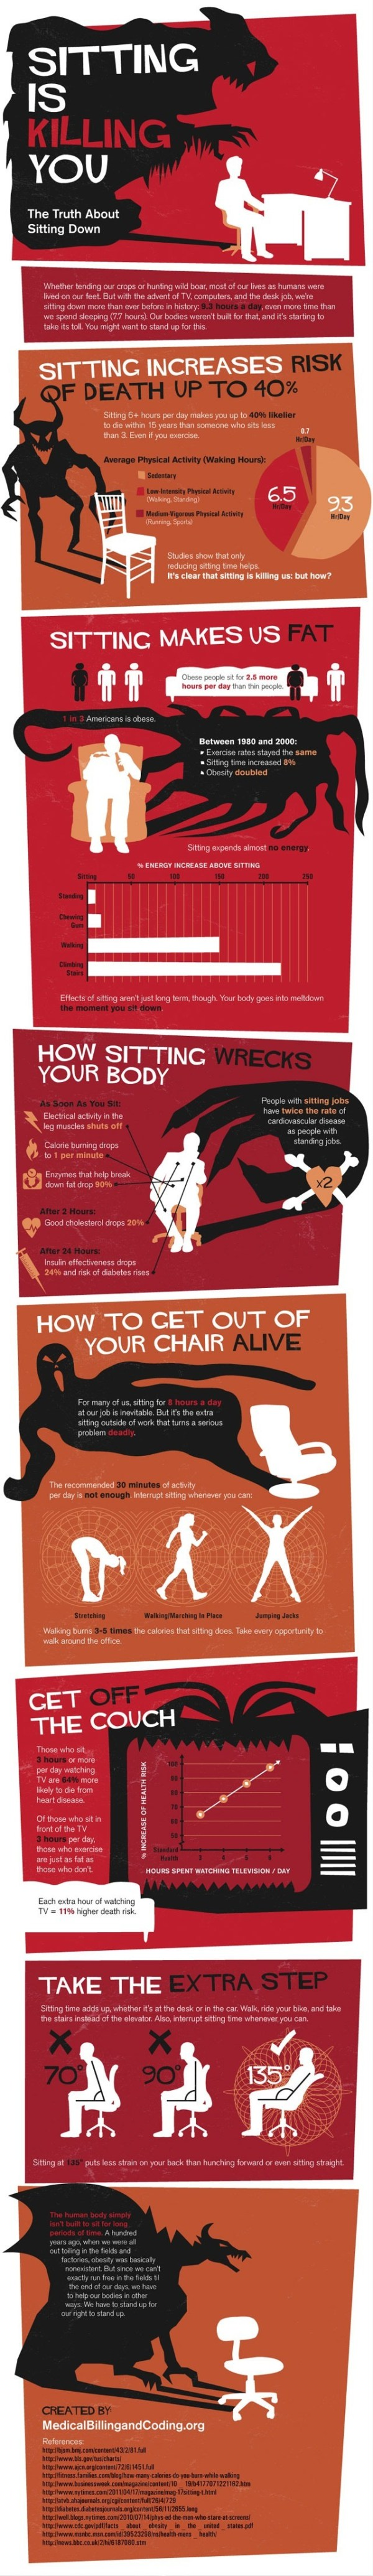 Health Risks of Sitting Too Much